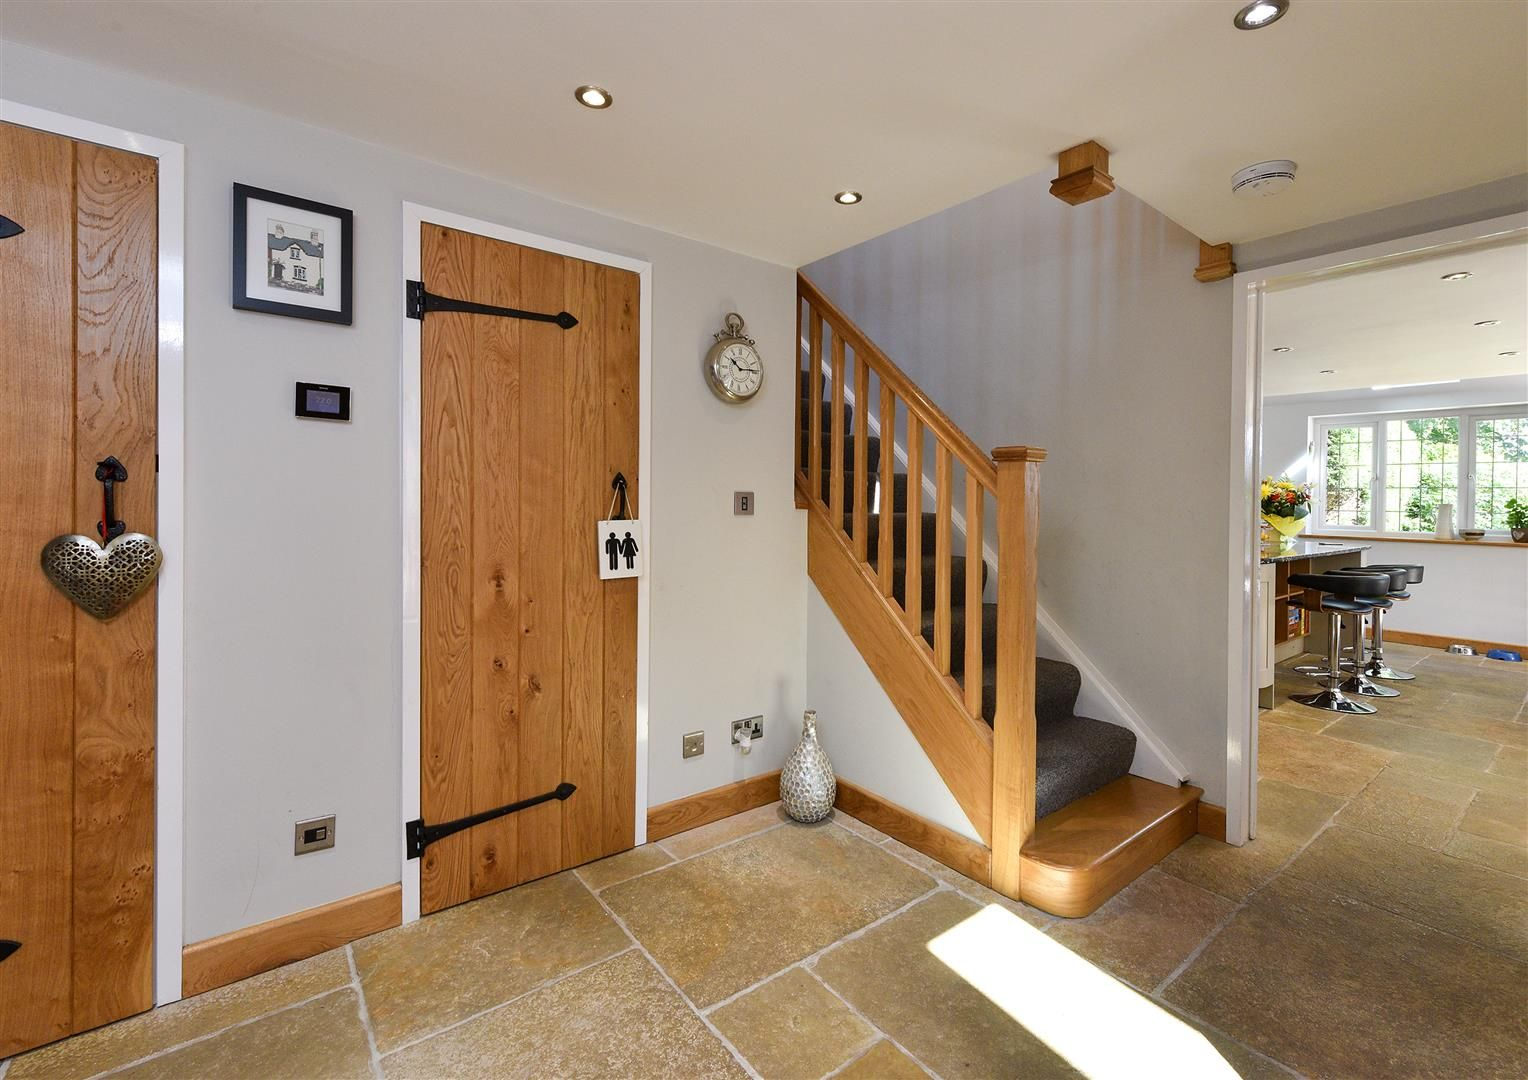 4 bed house for sale in Belbroughton 6